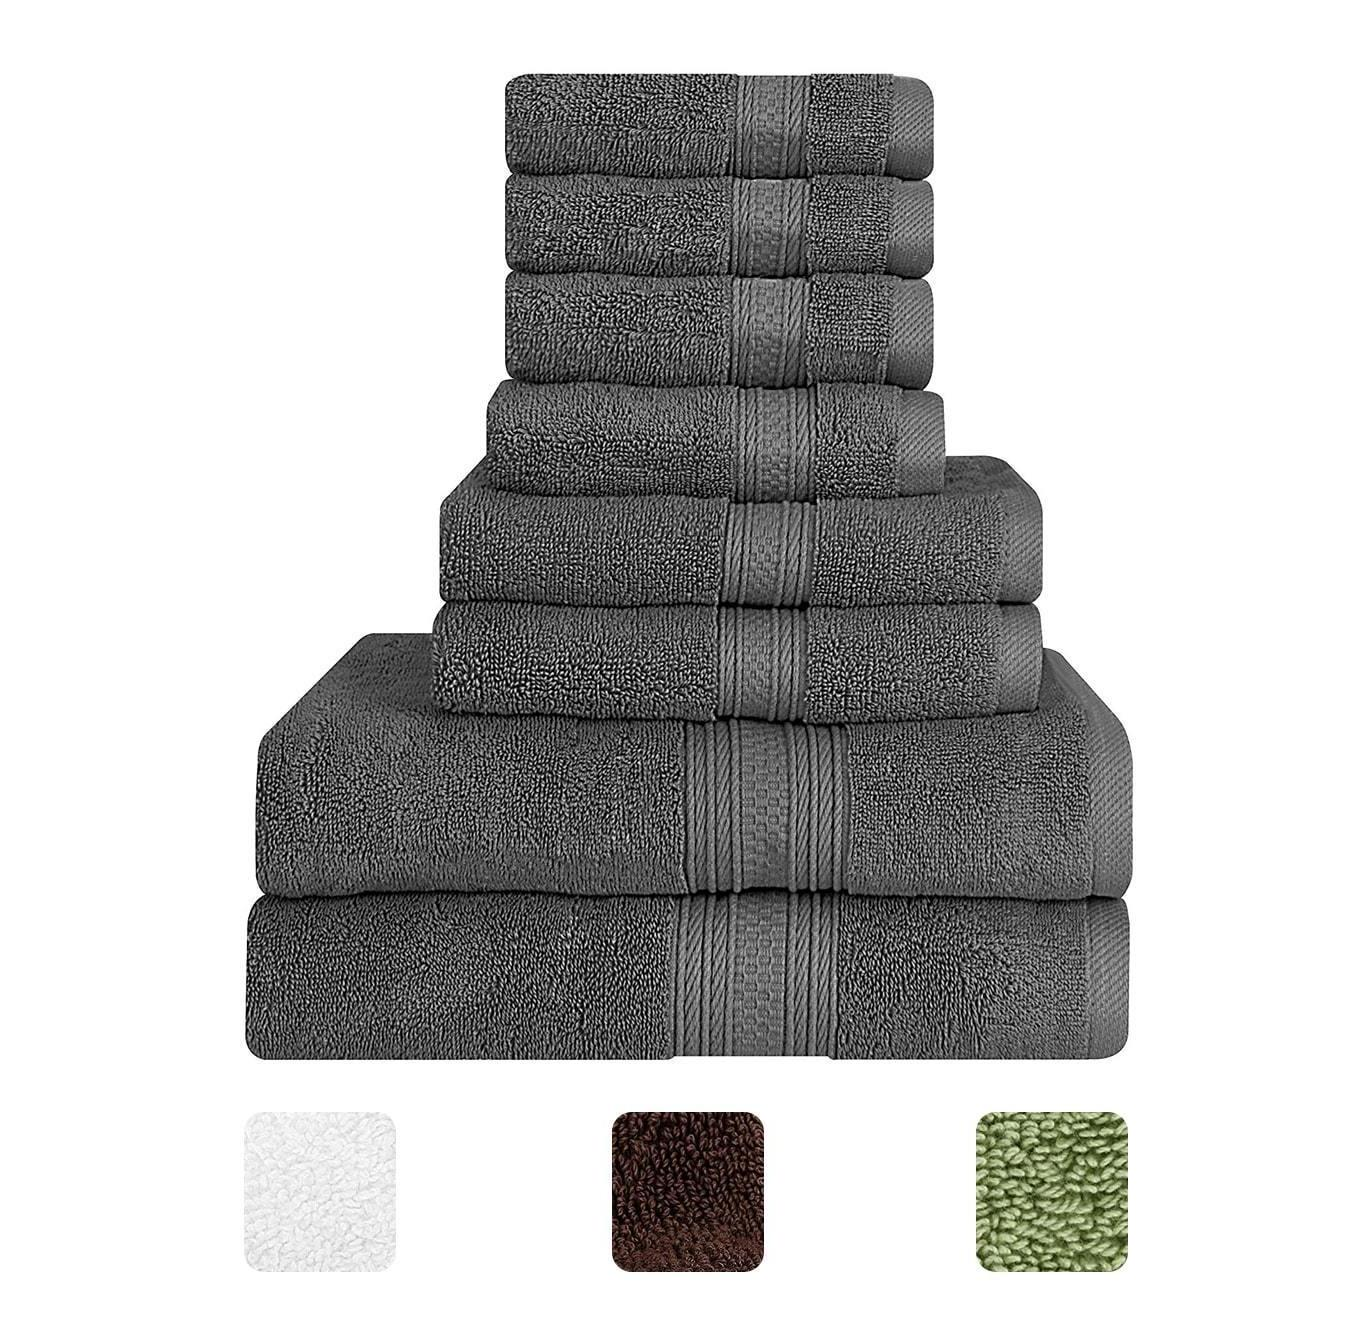 Towel Set Cotton 8 Piece 2 Bath Towel 2 Hand Towel 4 Washclo